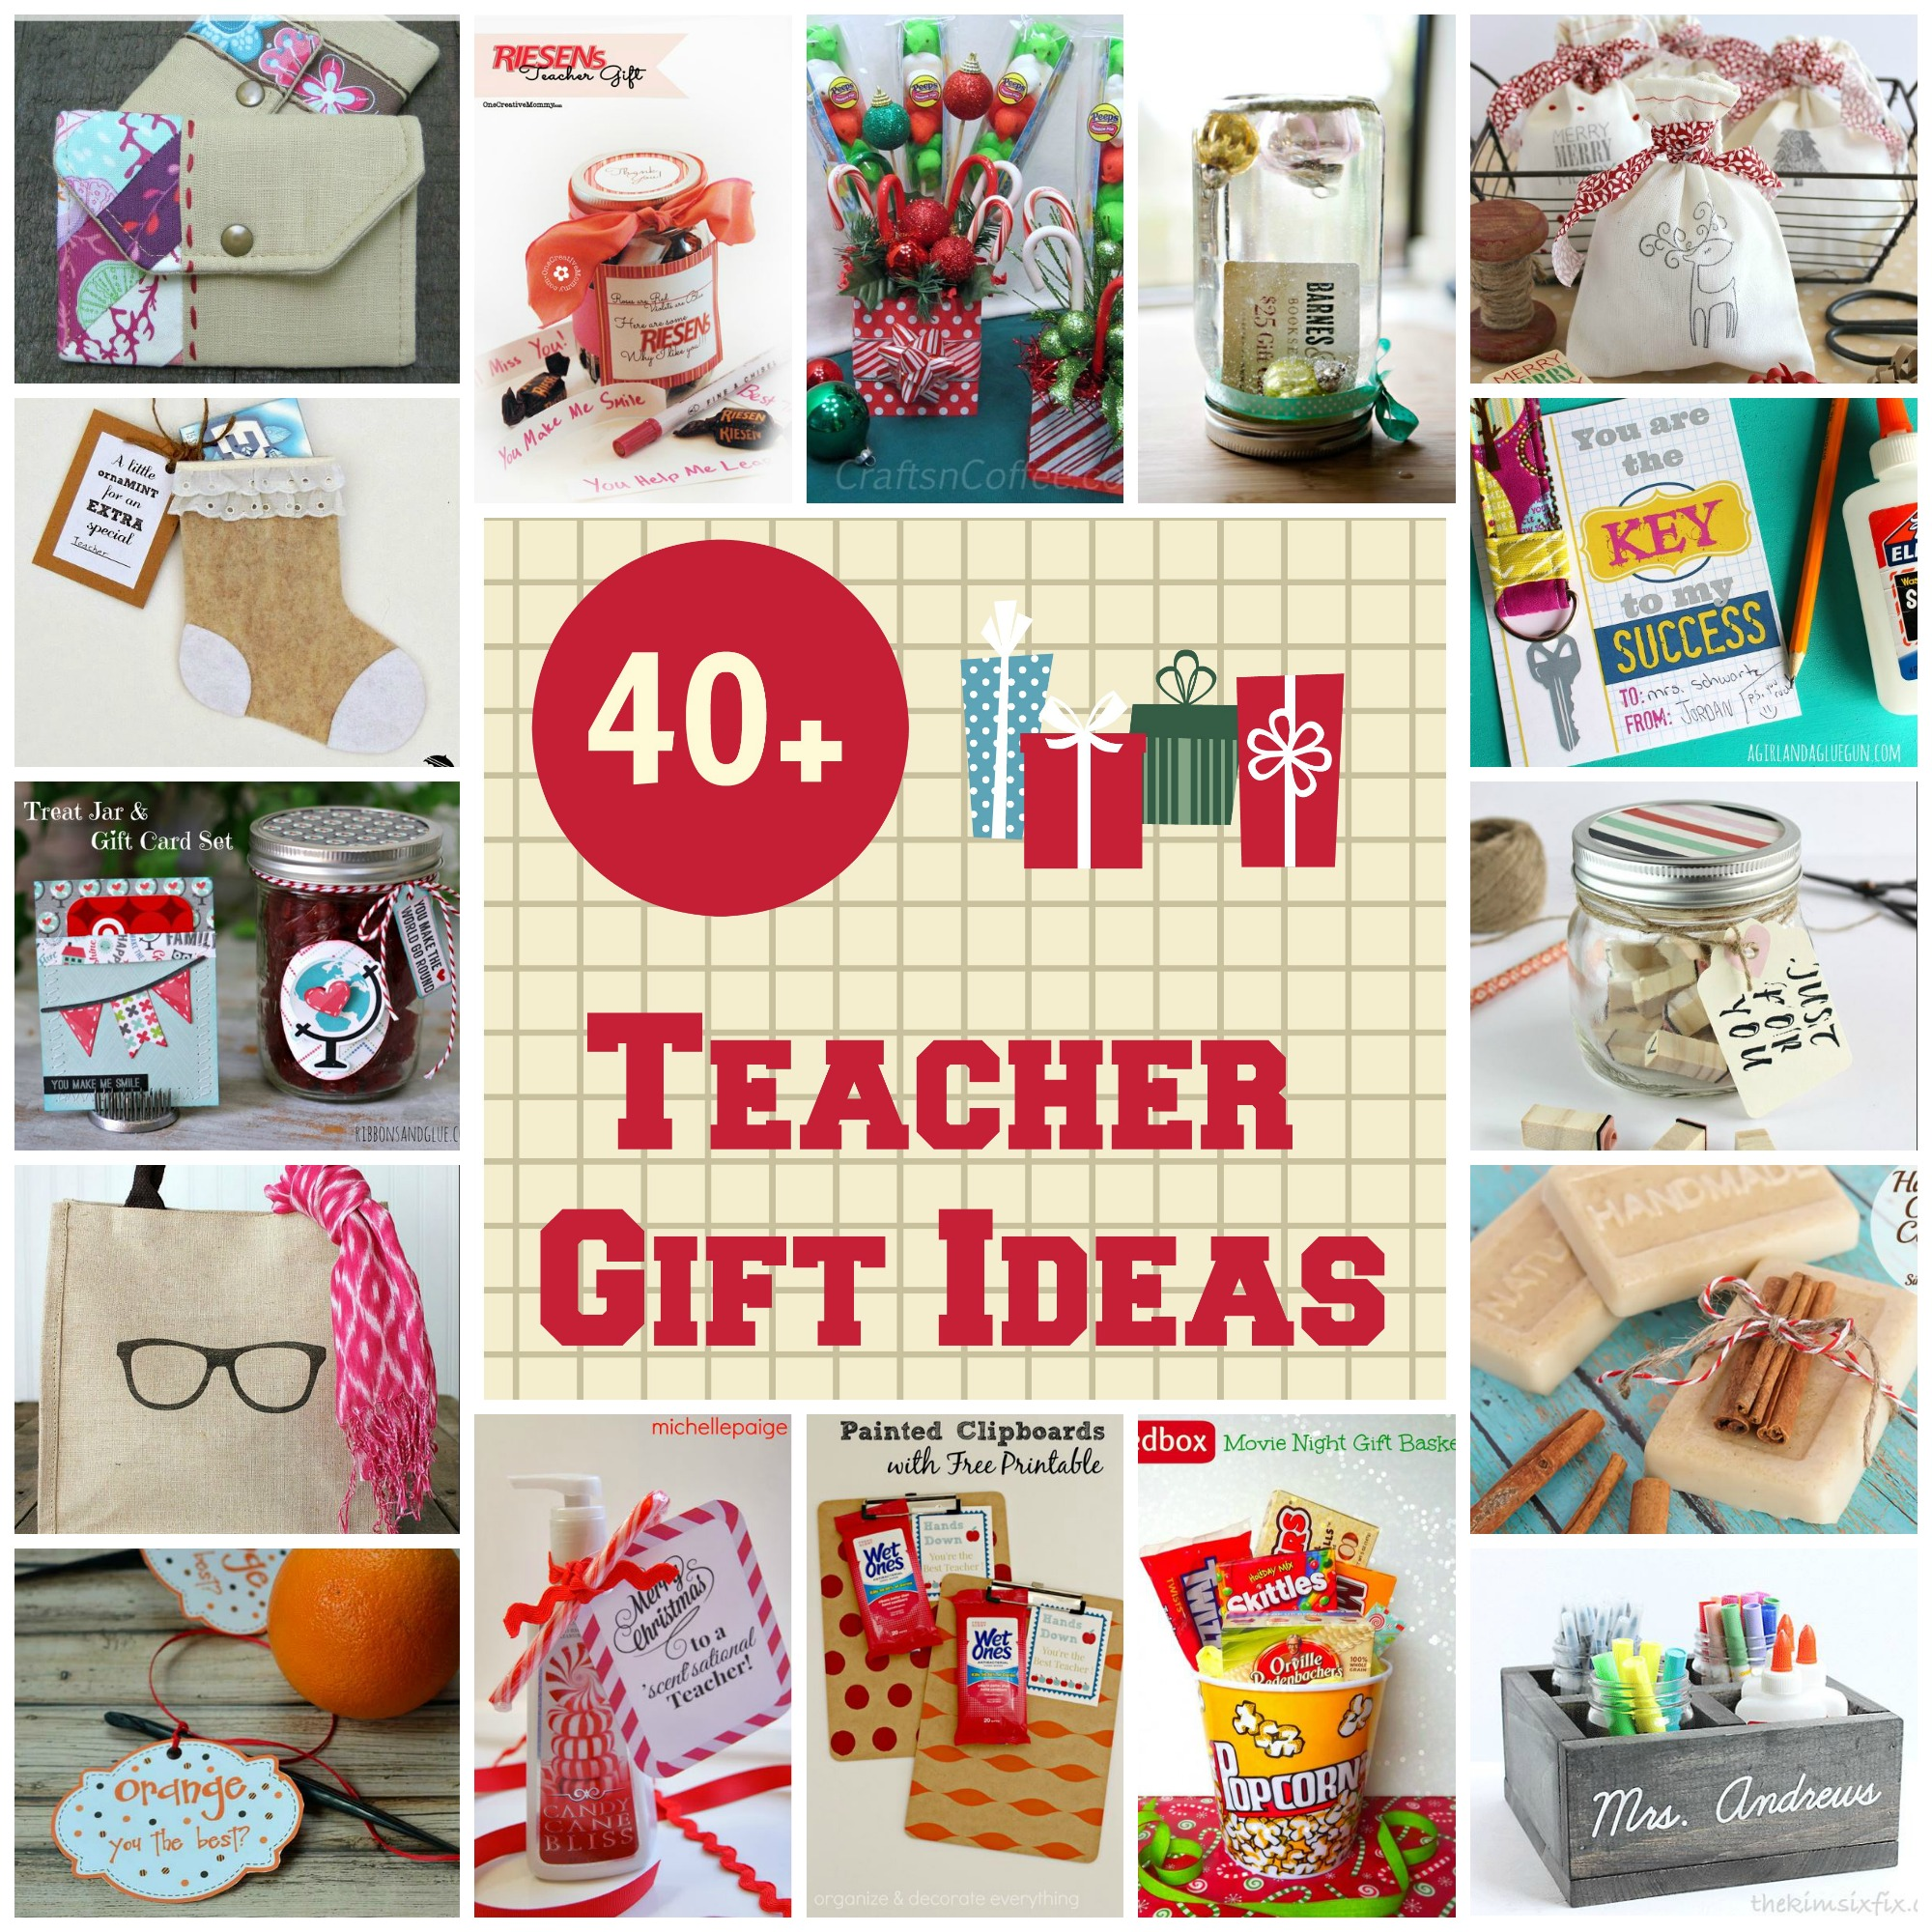 40+ teacher gift ideas  sc 1 st  Organize and Decorate Everything & 40+ Christmas Gift Ideas for Teachers - Organize and Decorate Everything